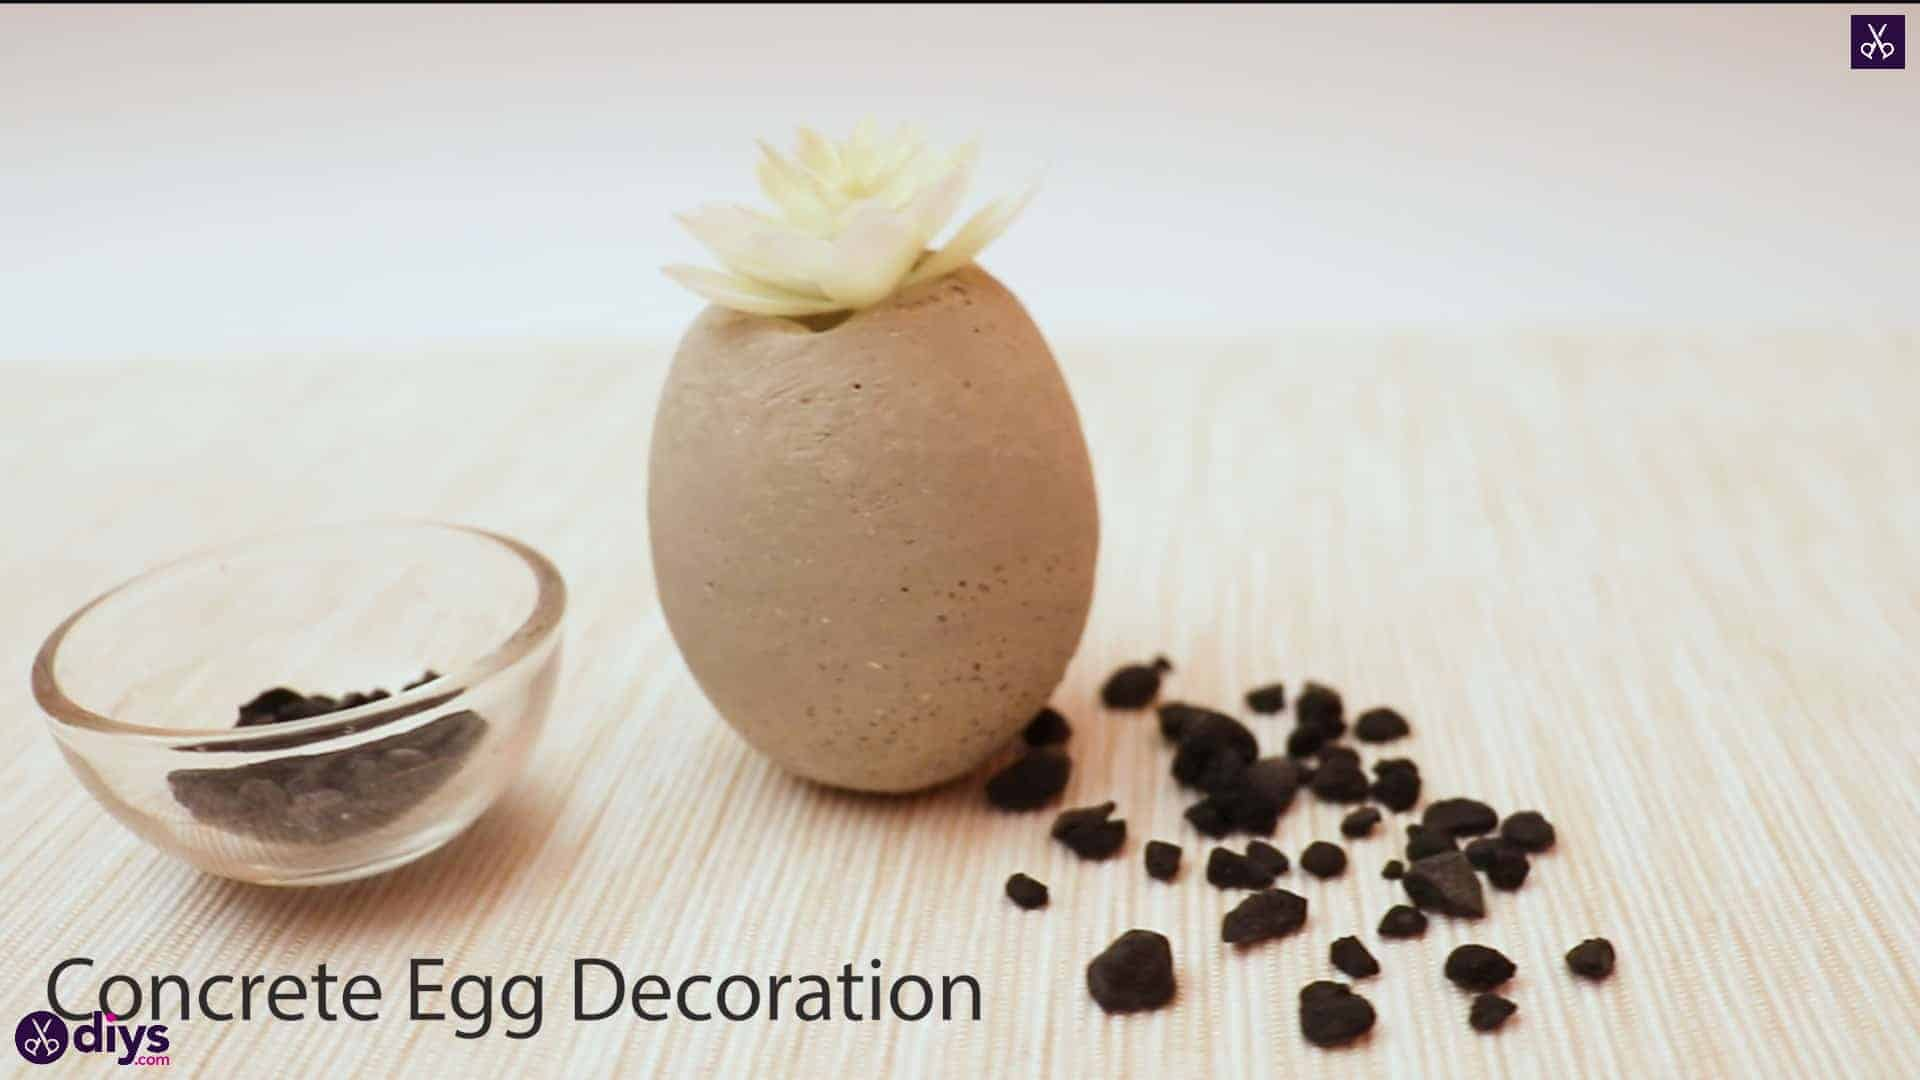 Concrete egg decoration